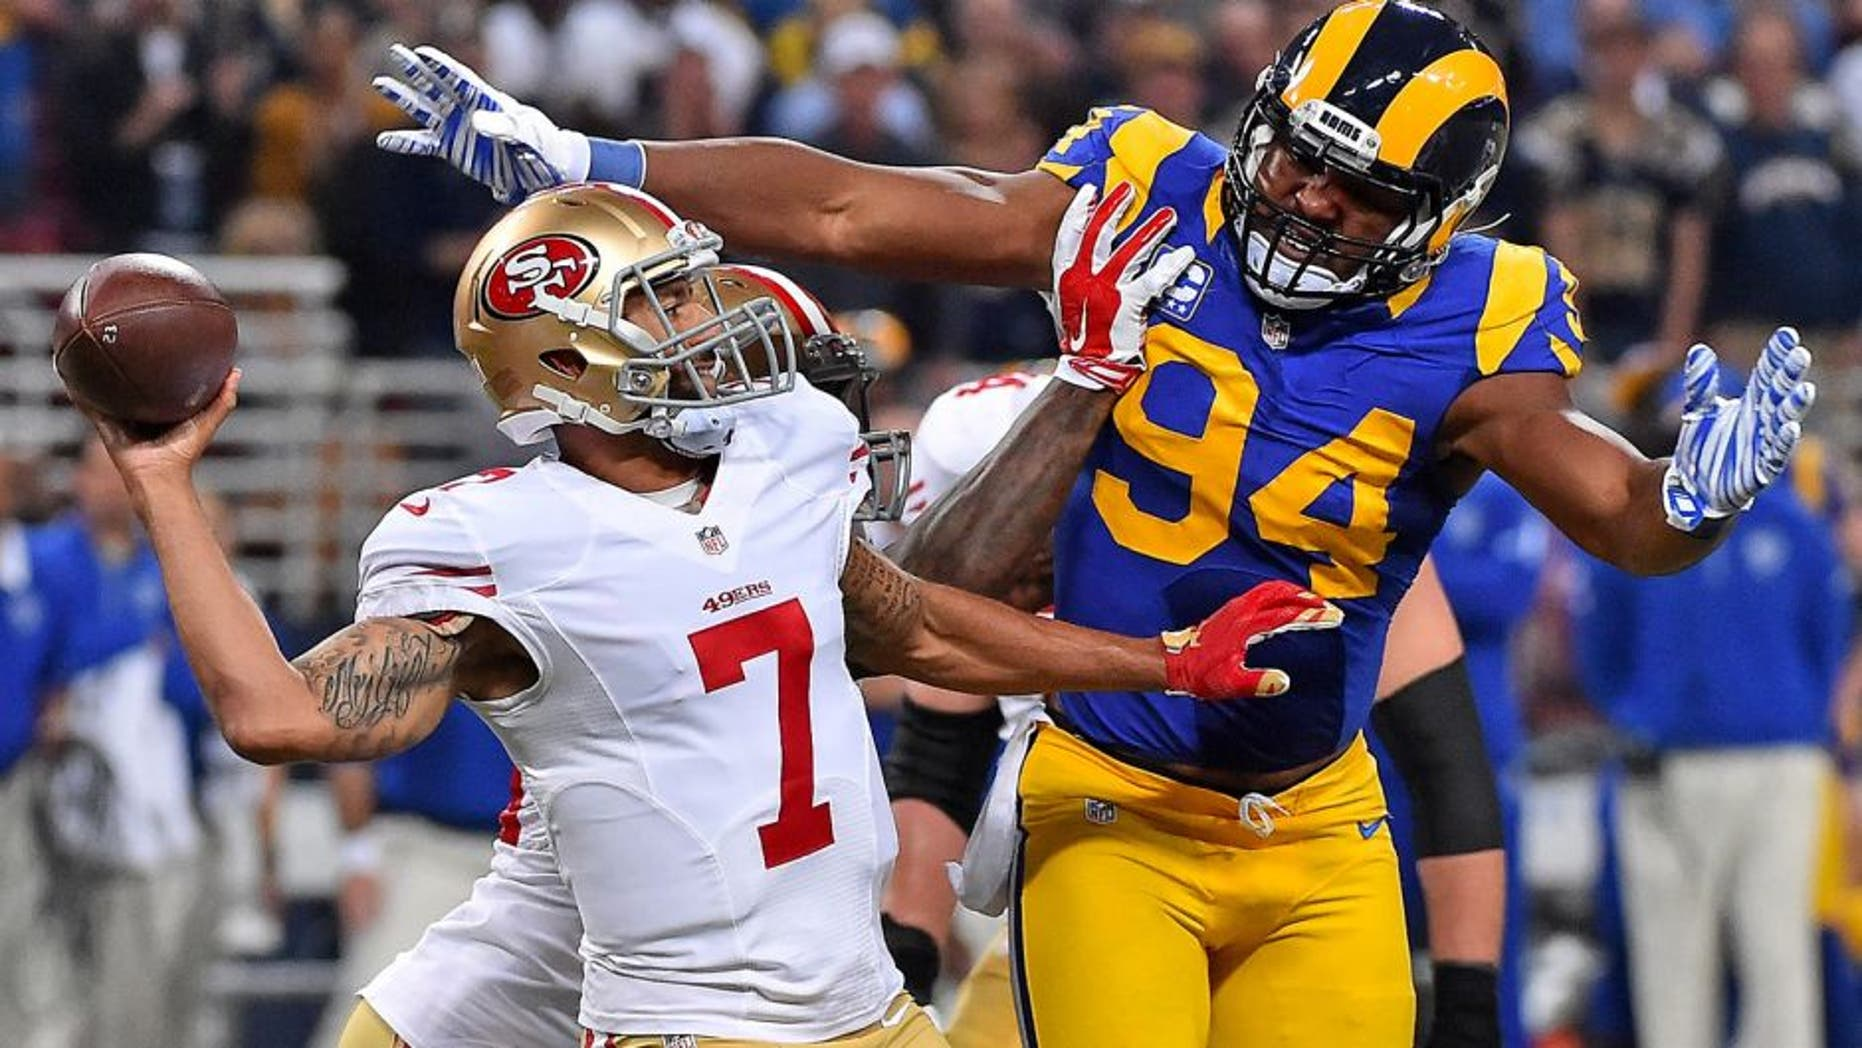 Nov 1, 2015; St. Louis, MO, USA; St. Louis Rams defensive end Robert Quinn (94) pressures San Francisco 49ers quarterback Colin Kaepernick (7) during the first half at the Edward Jones Dome. Mandatory Credit: Jasen Vinlove-USA TODAY Sports